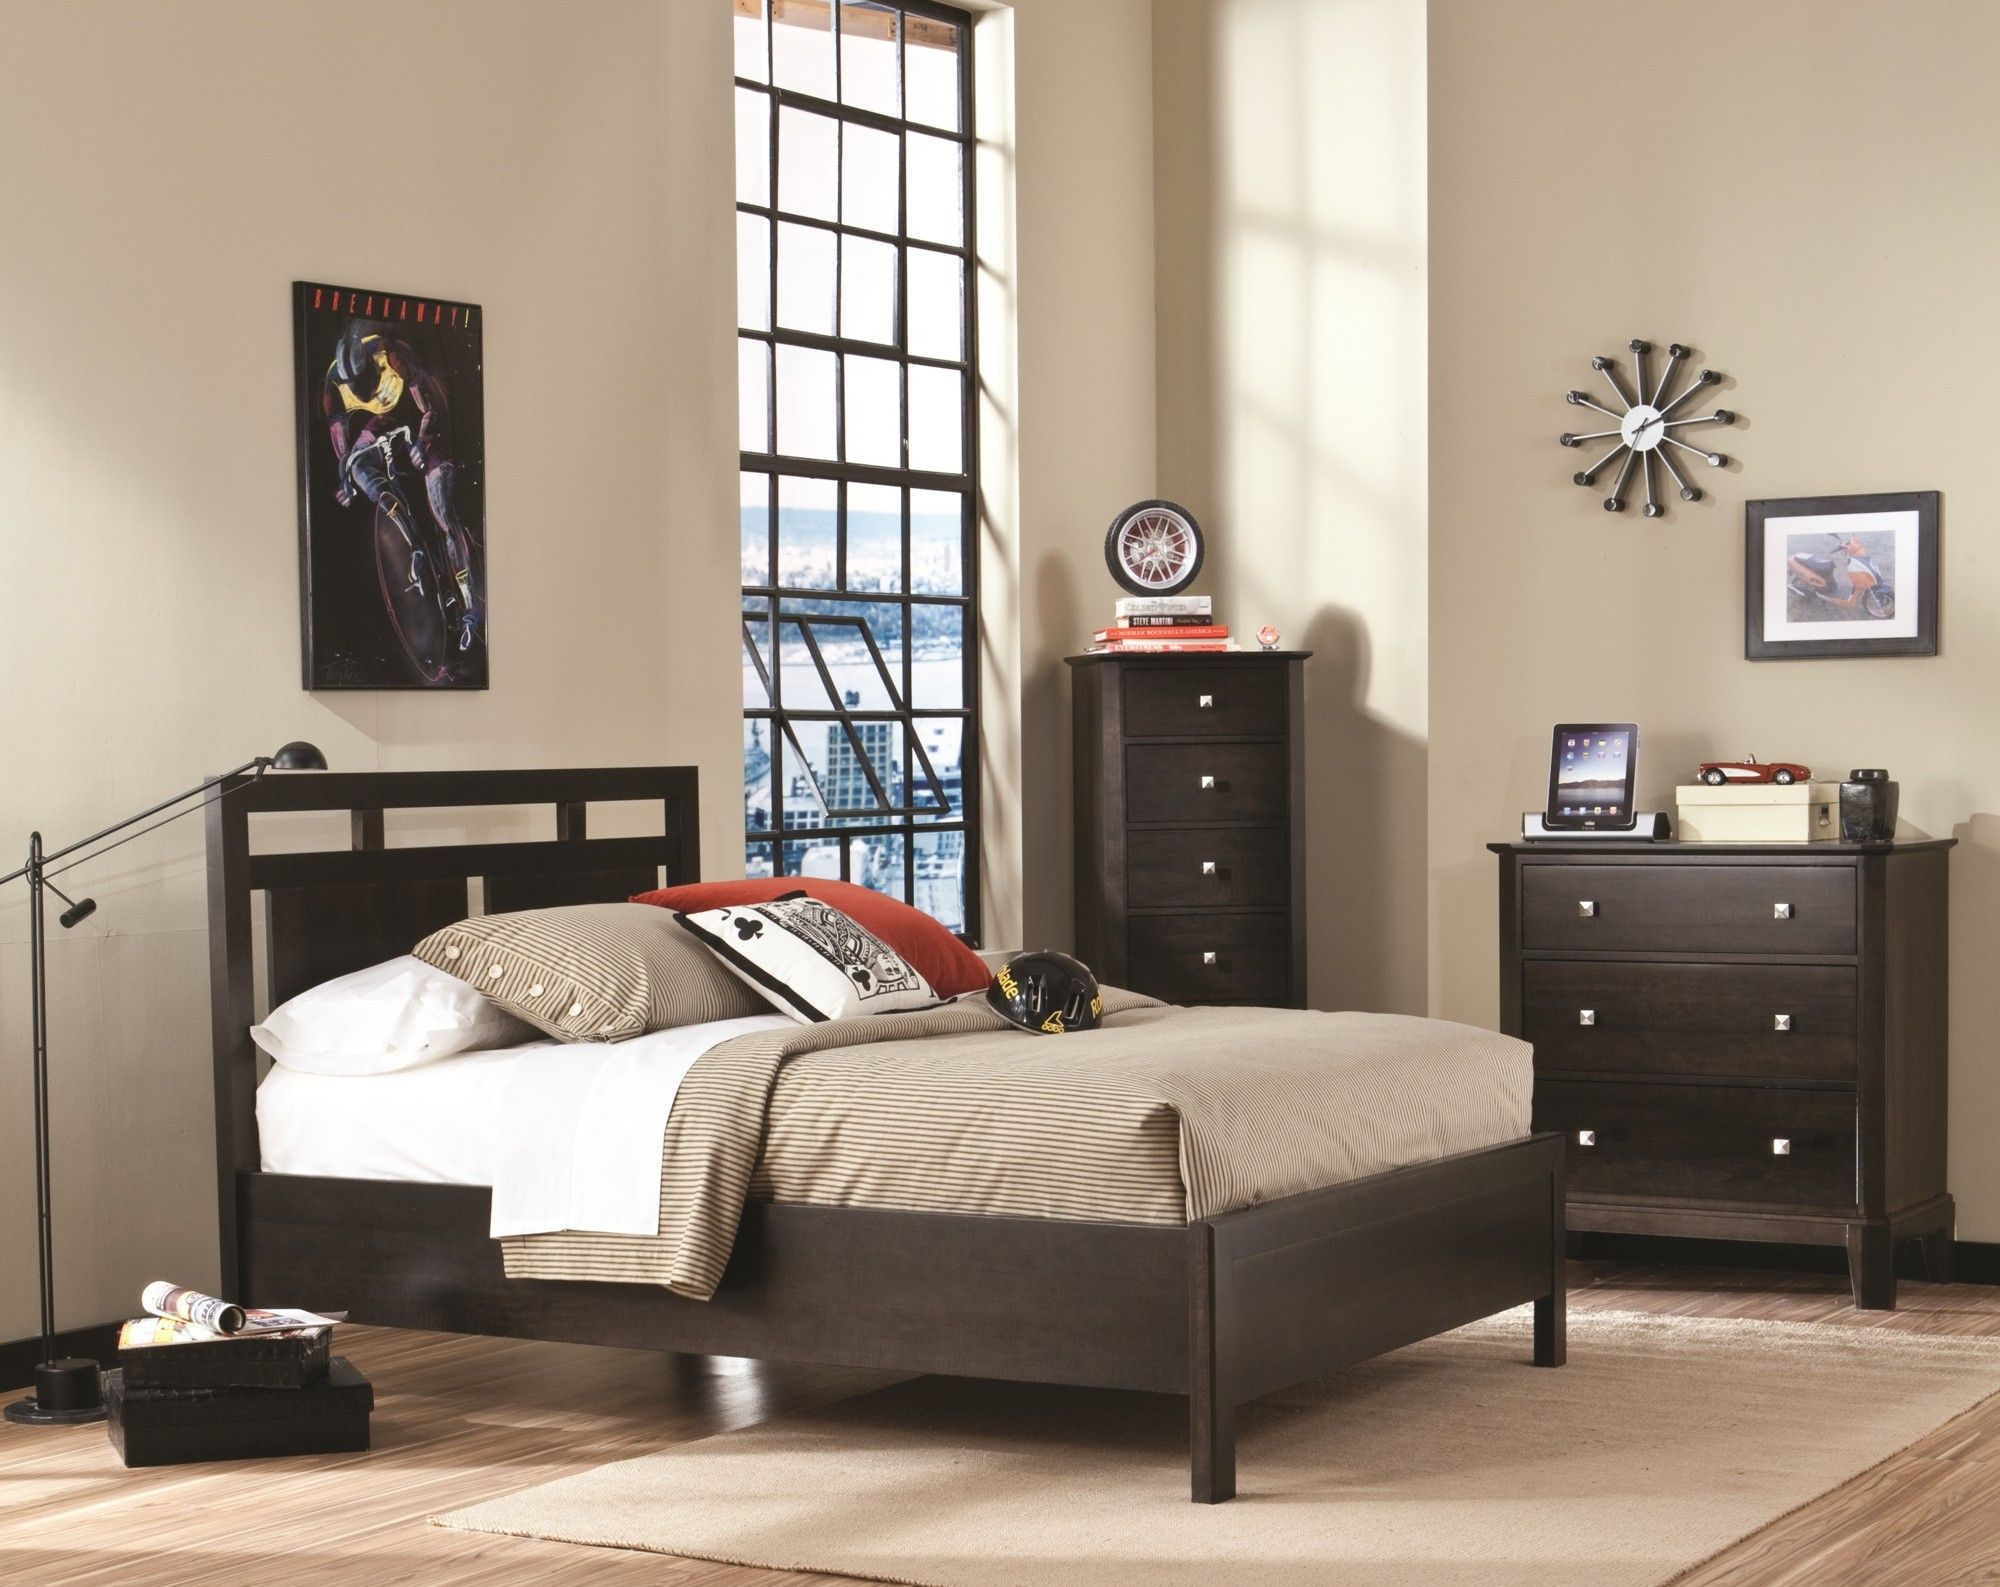 Tagsscandinavian Bedroom Set Ebay,Bedroom Excellent Bedroom Sets Inspiration For Modern,Scandinavia